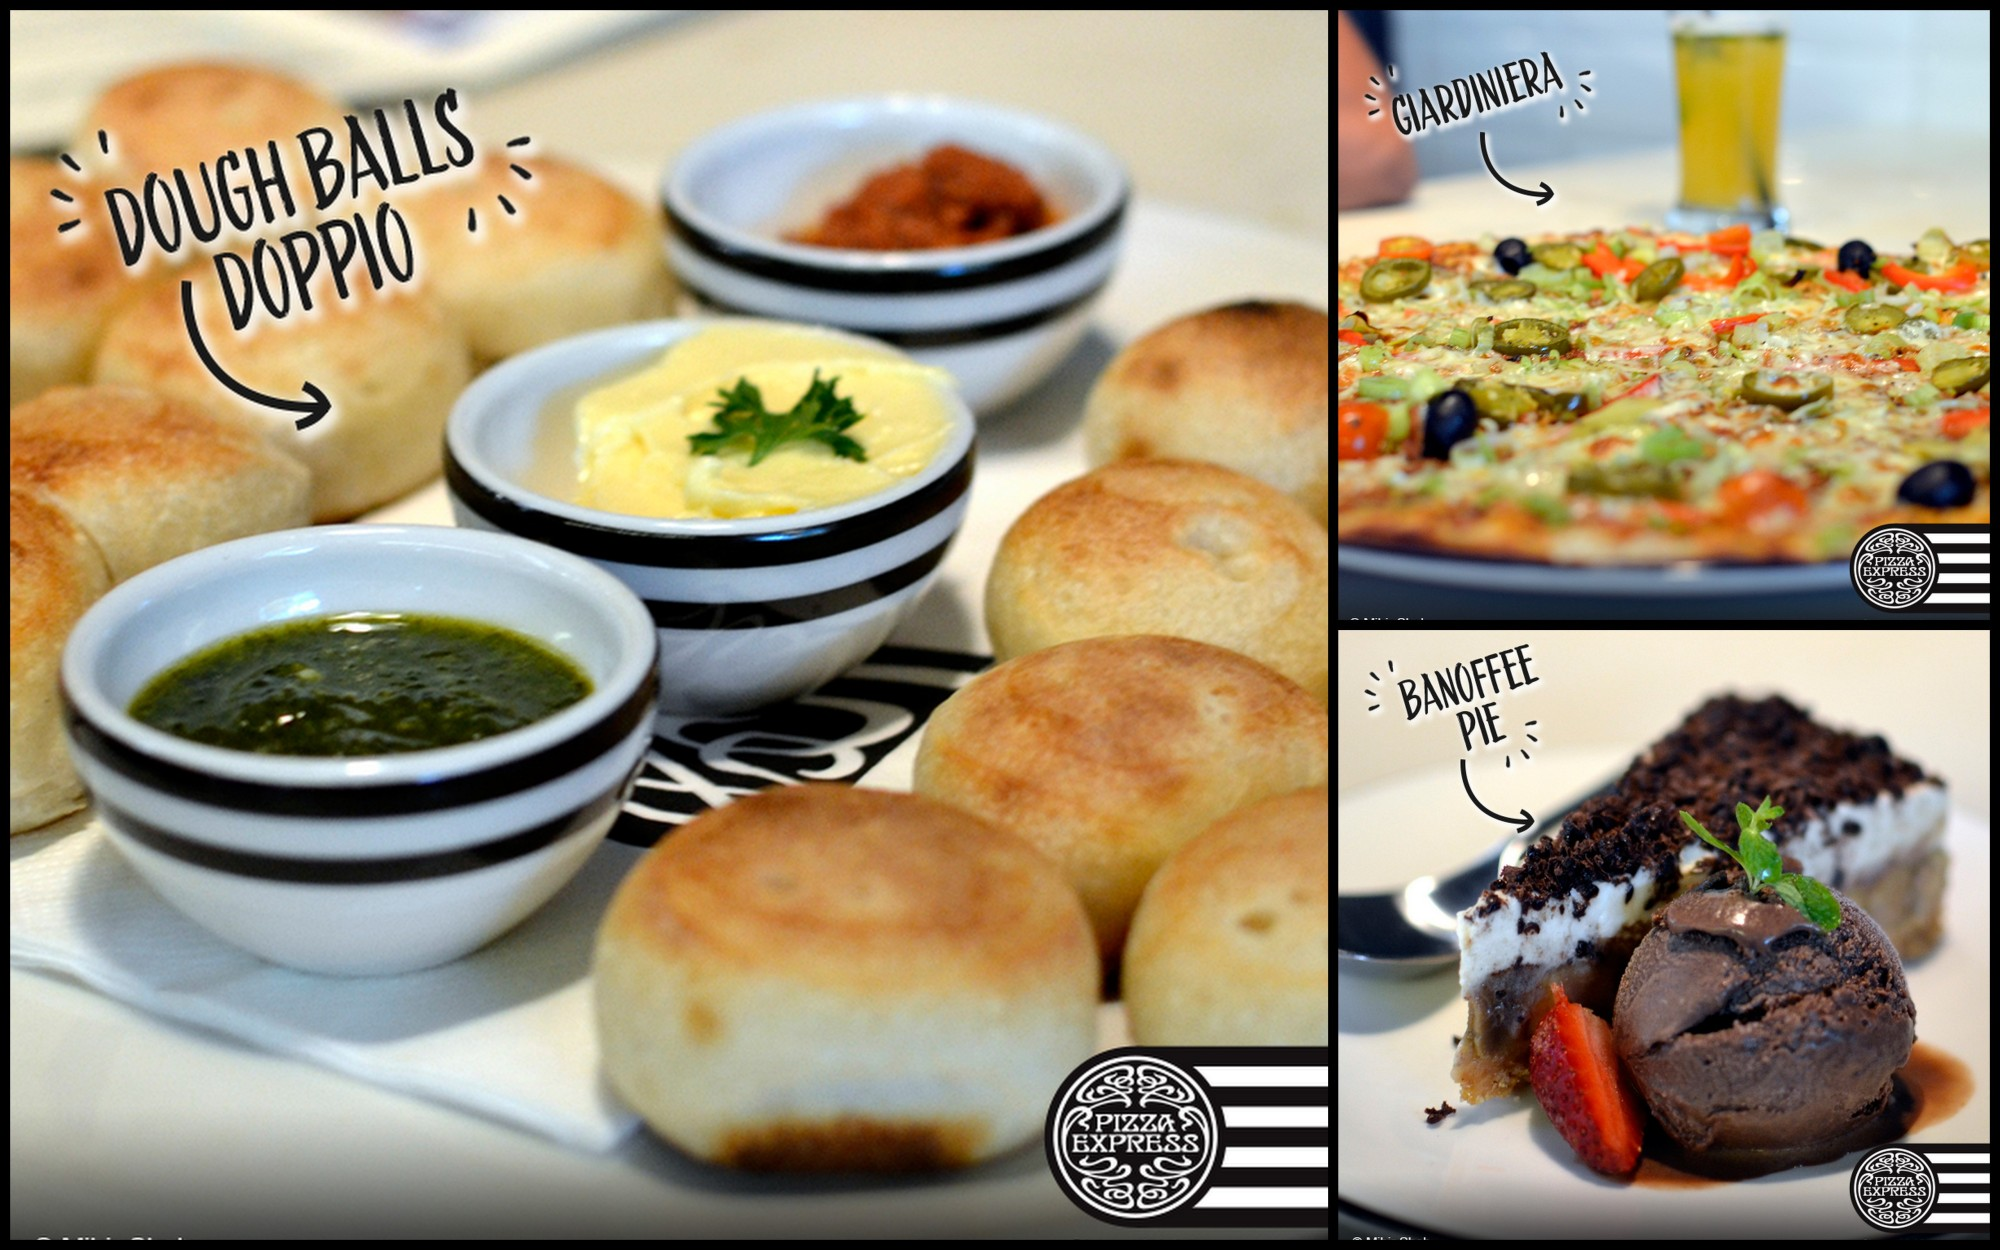 Pizza Express Featured Image